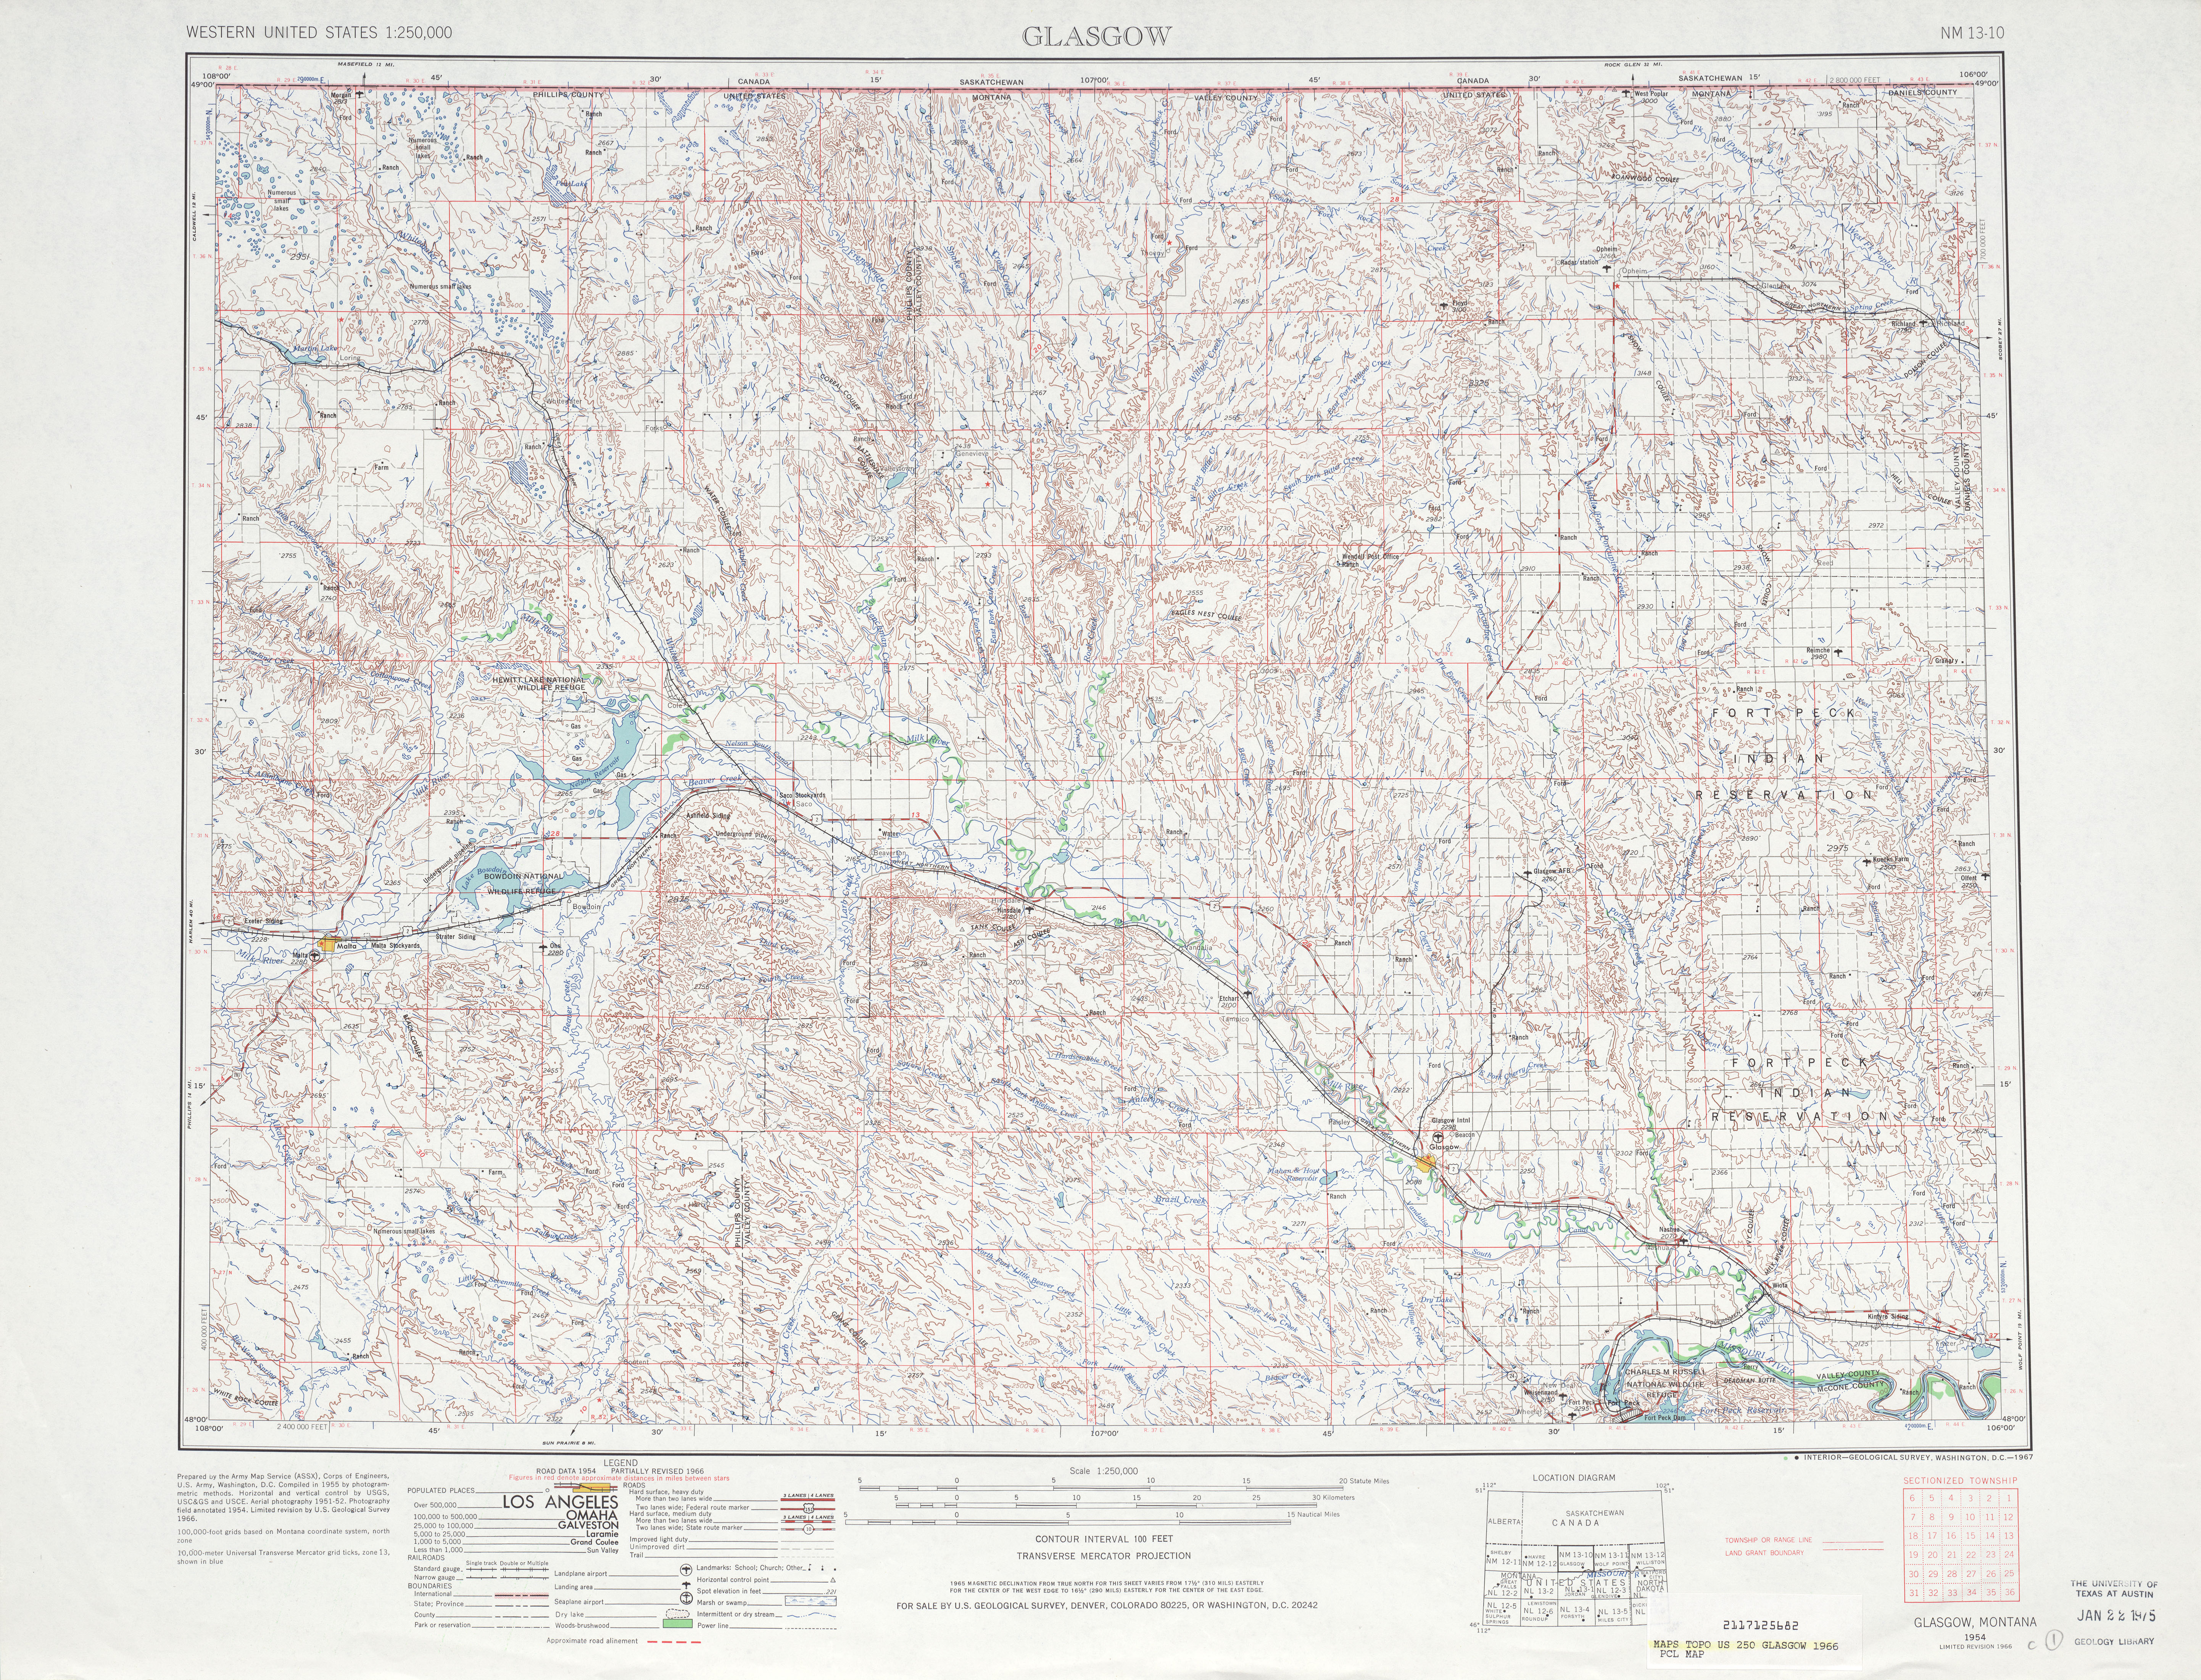 Glasgow Topographic Map Sheet, United States 1966